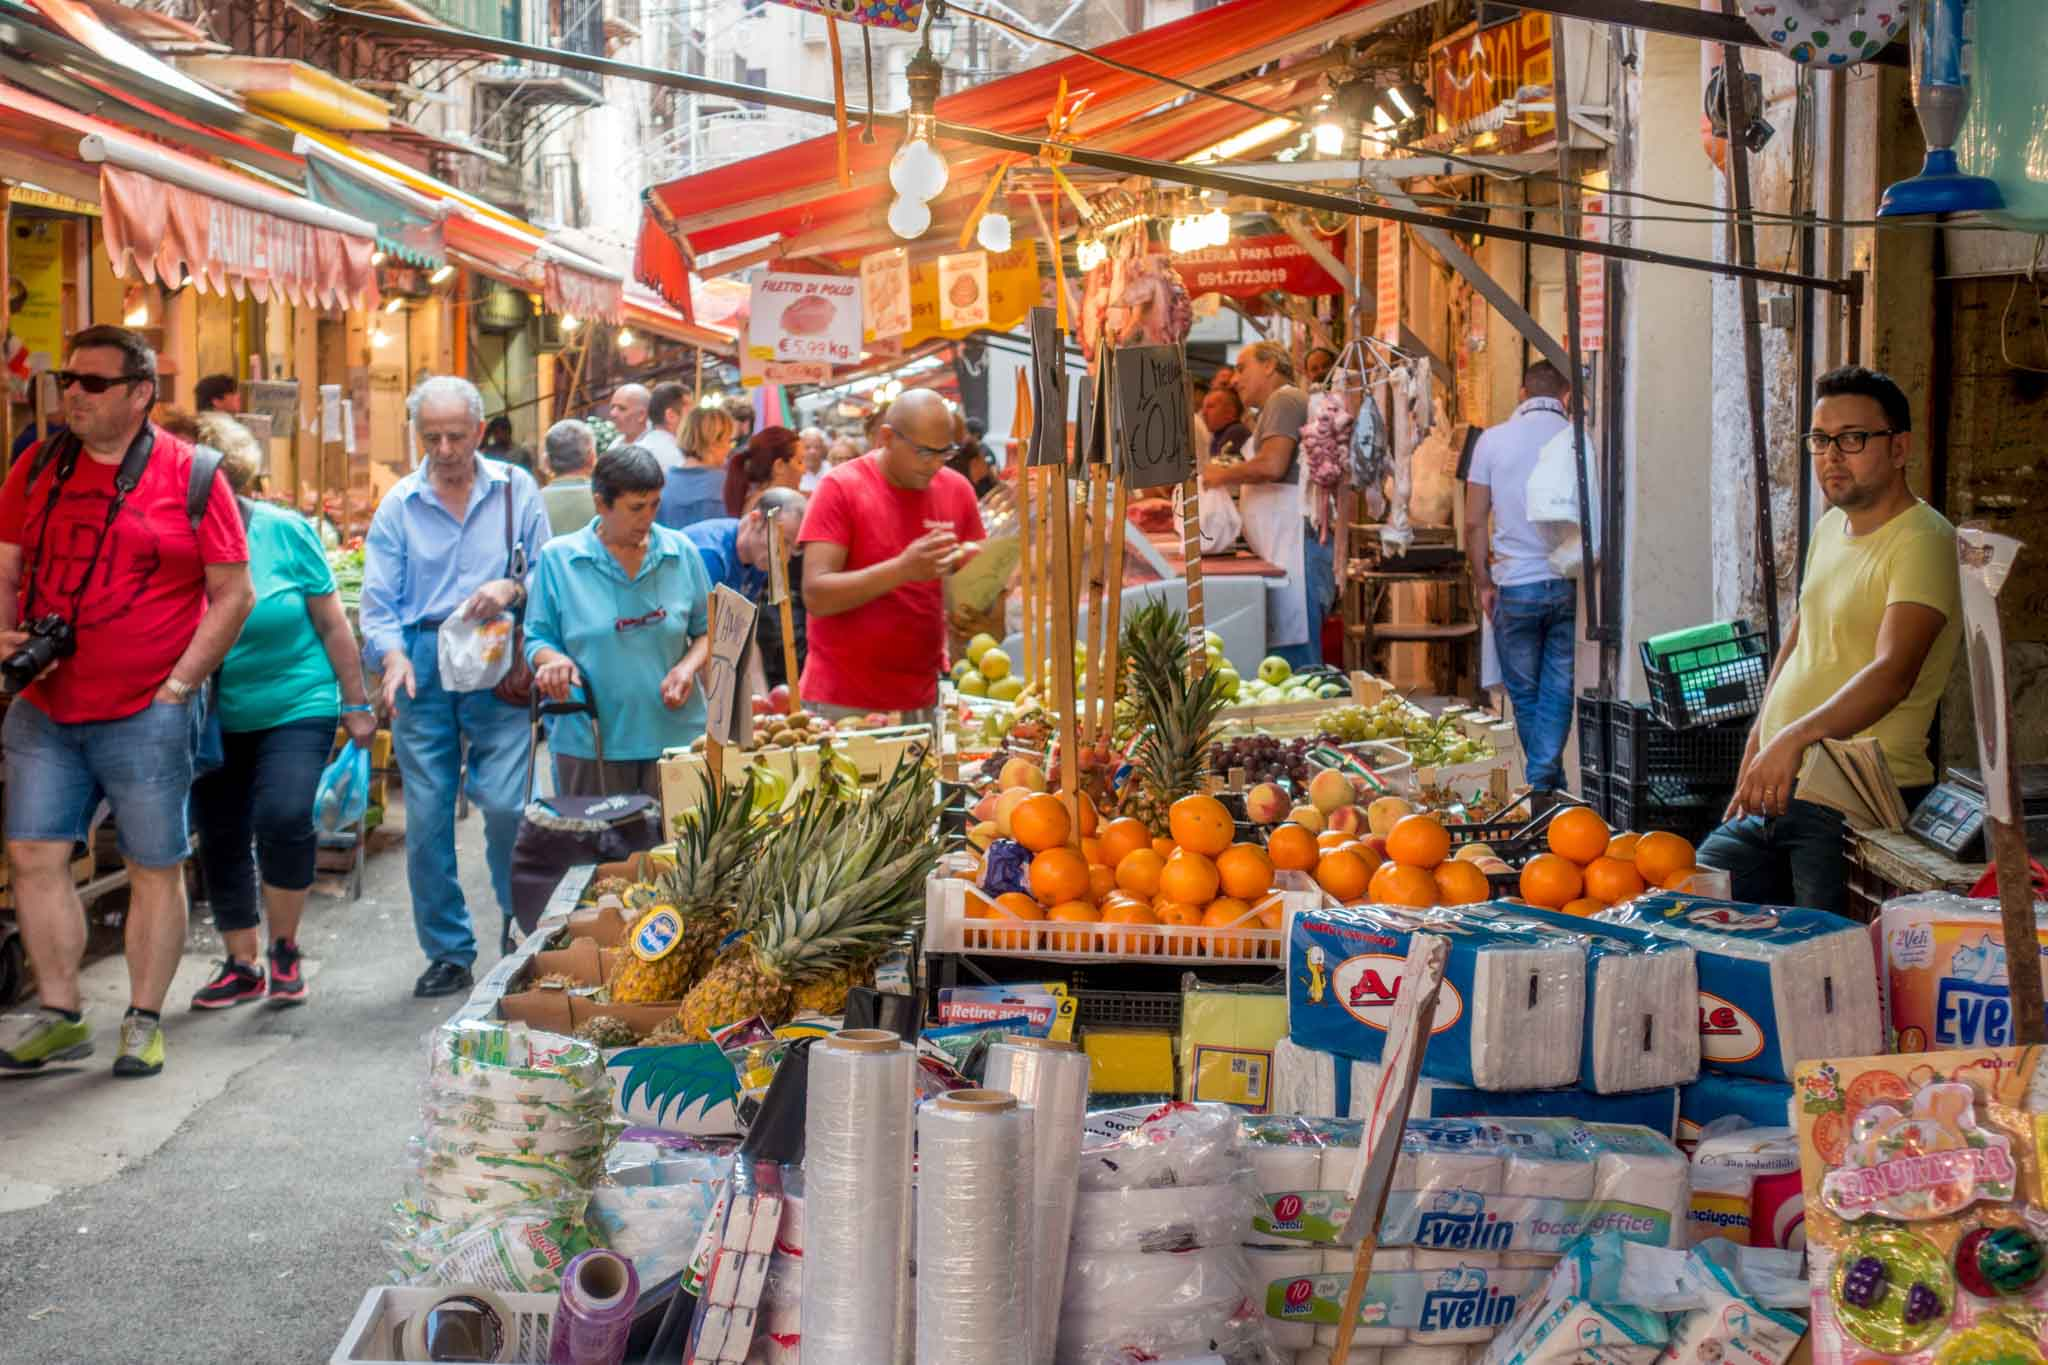 Food and vendors at the Ballaro market in Palermo